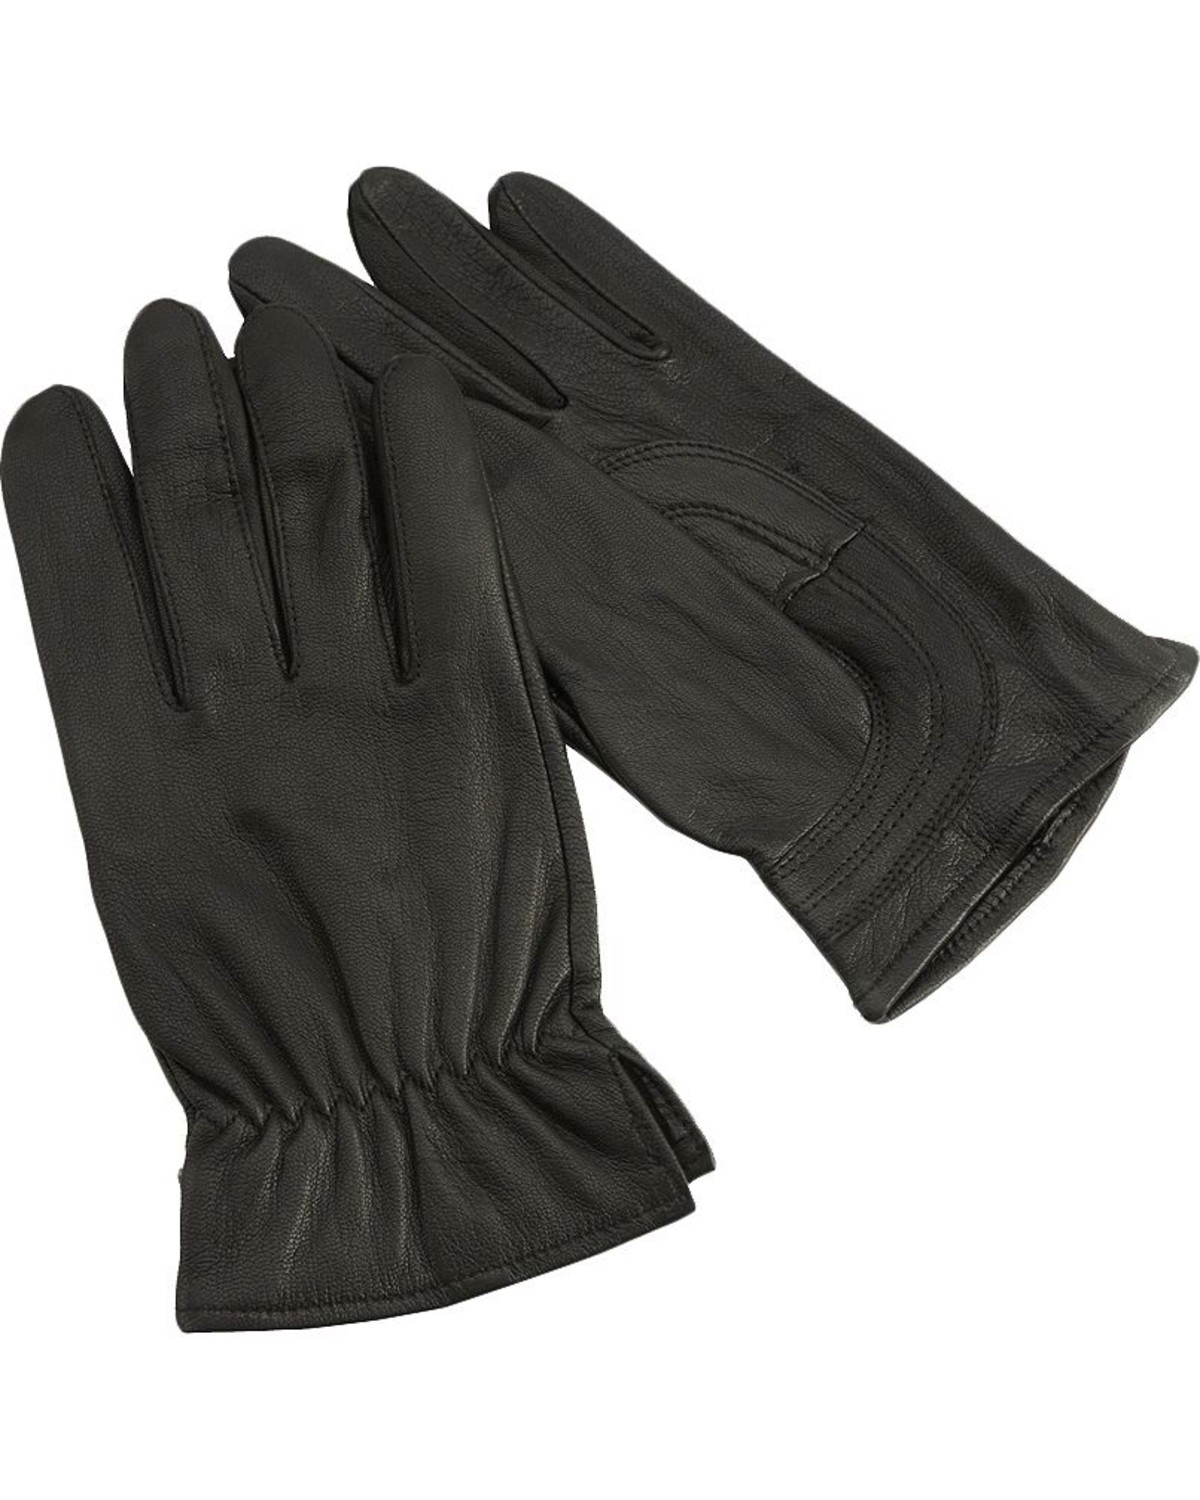 Justin leather work gloves - Hd Xtreme Leather Gloves Black Hi Res